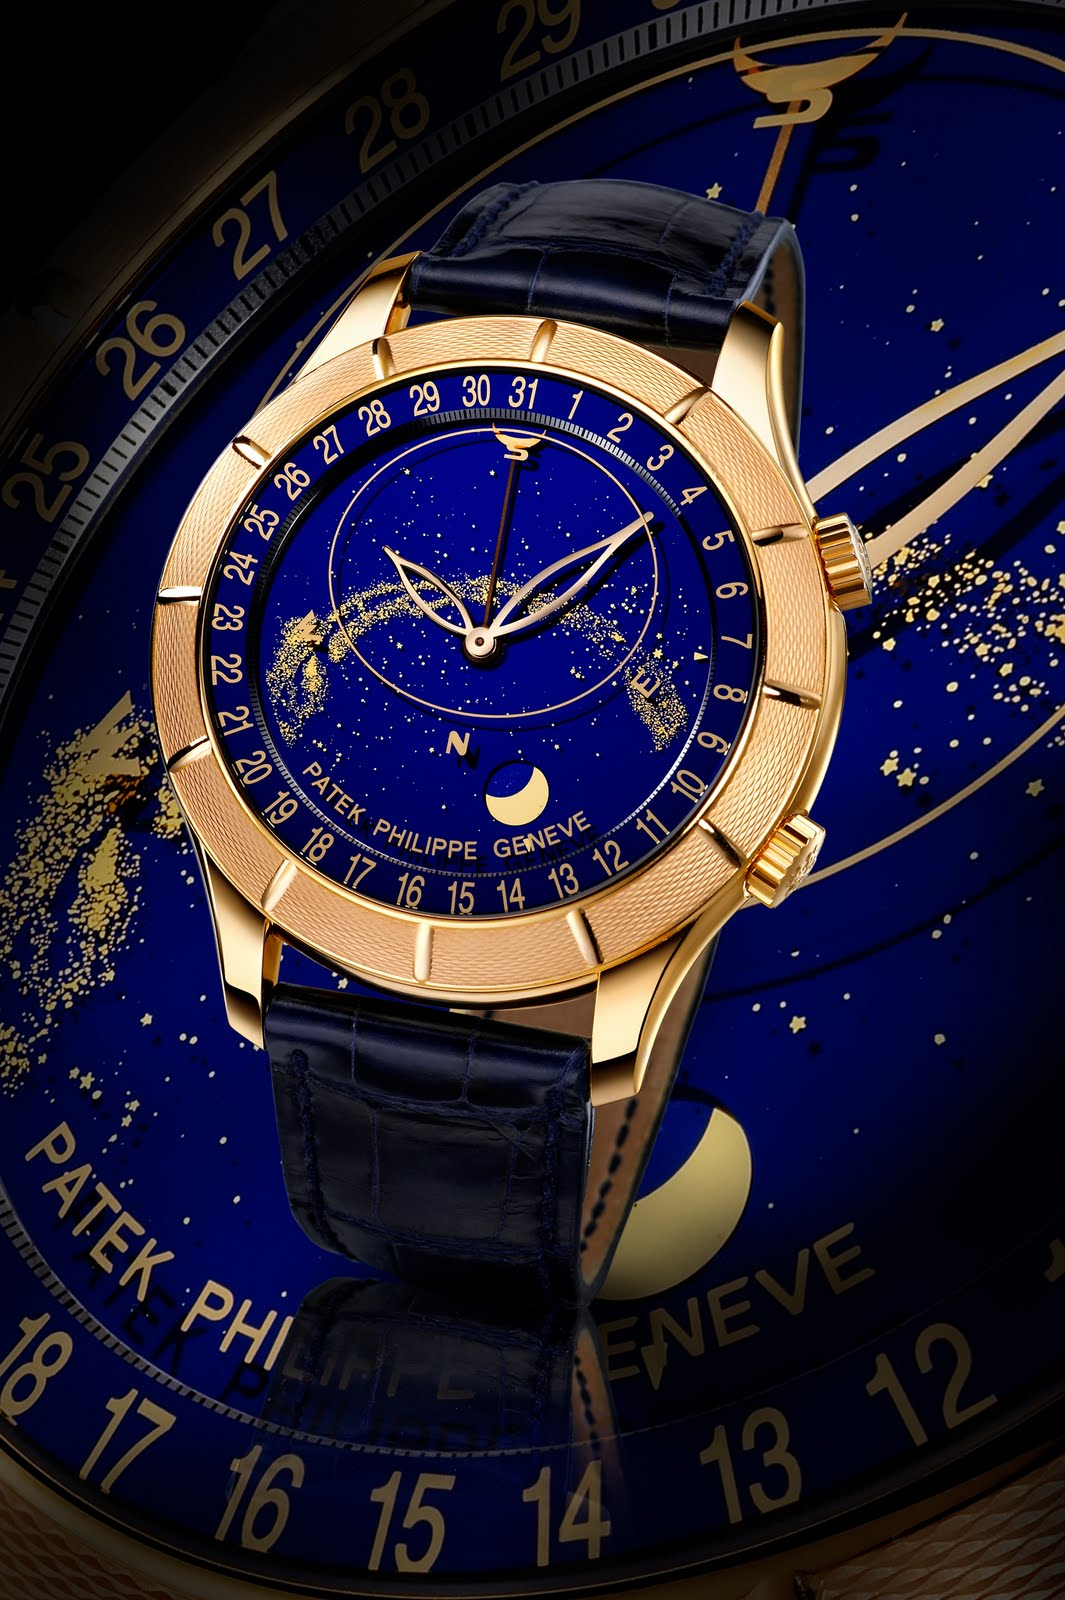 Unique watches type of astronomical watches for Patek philippe watch